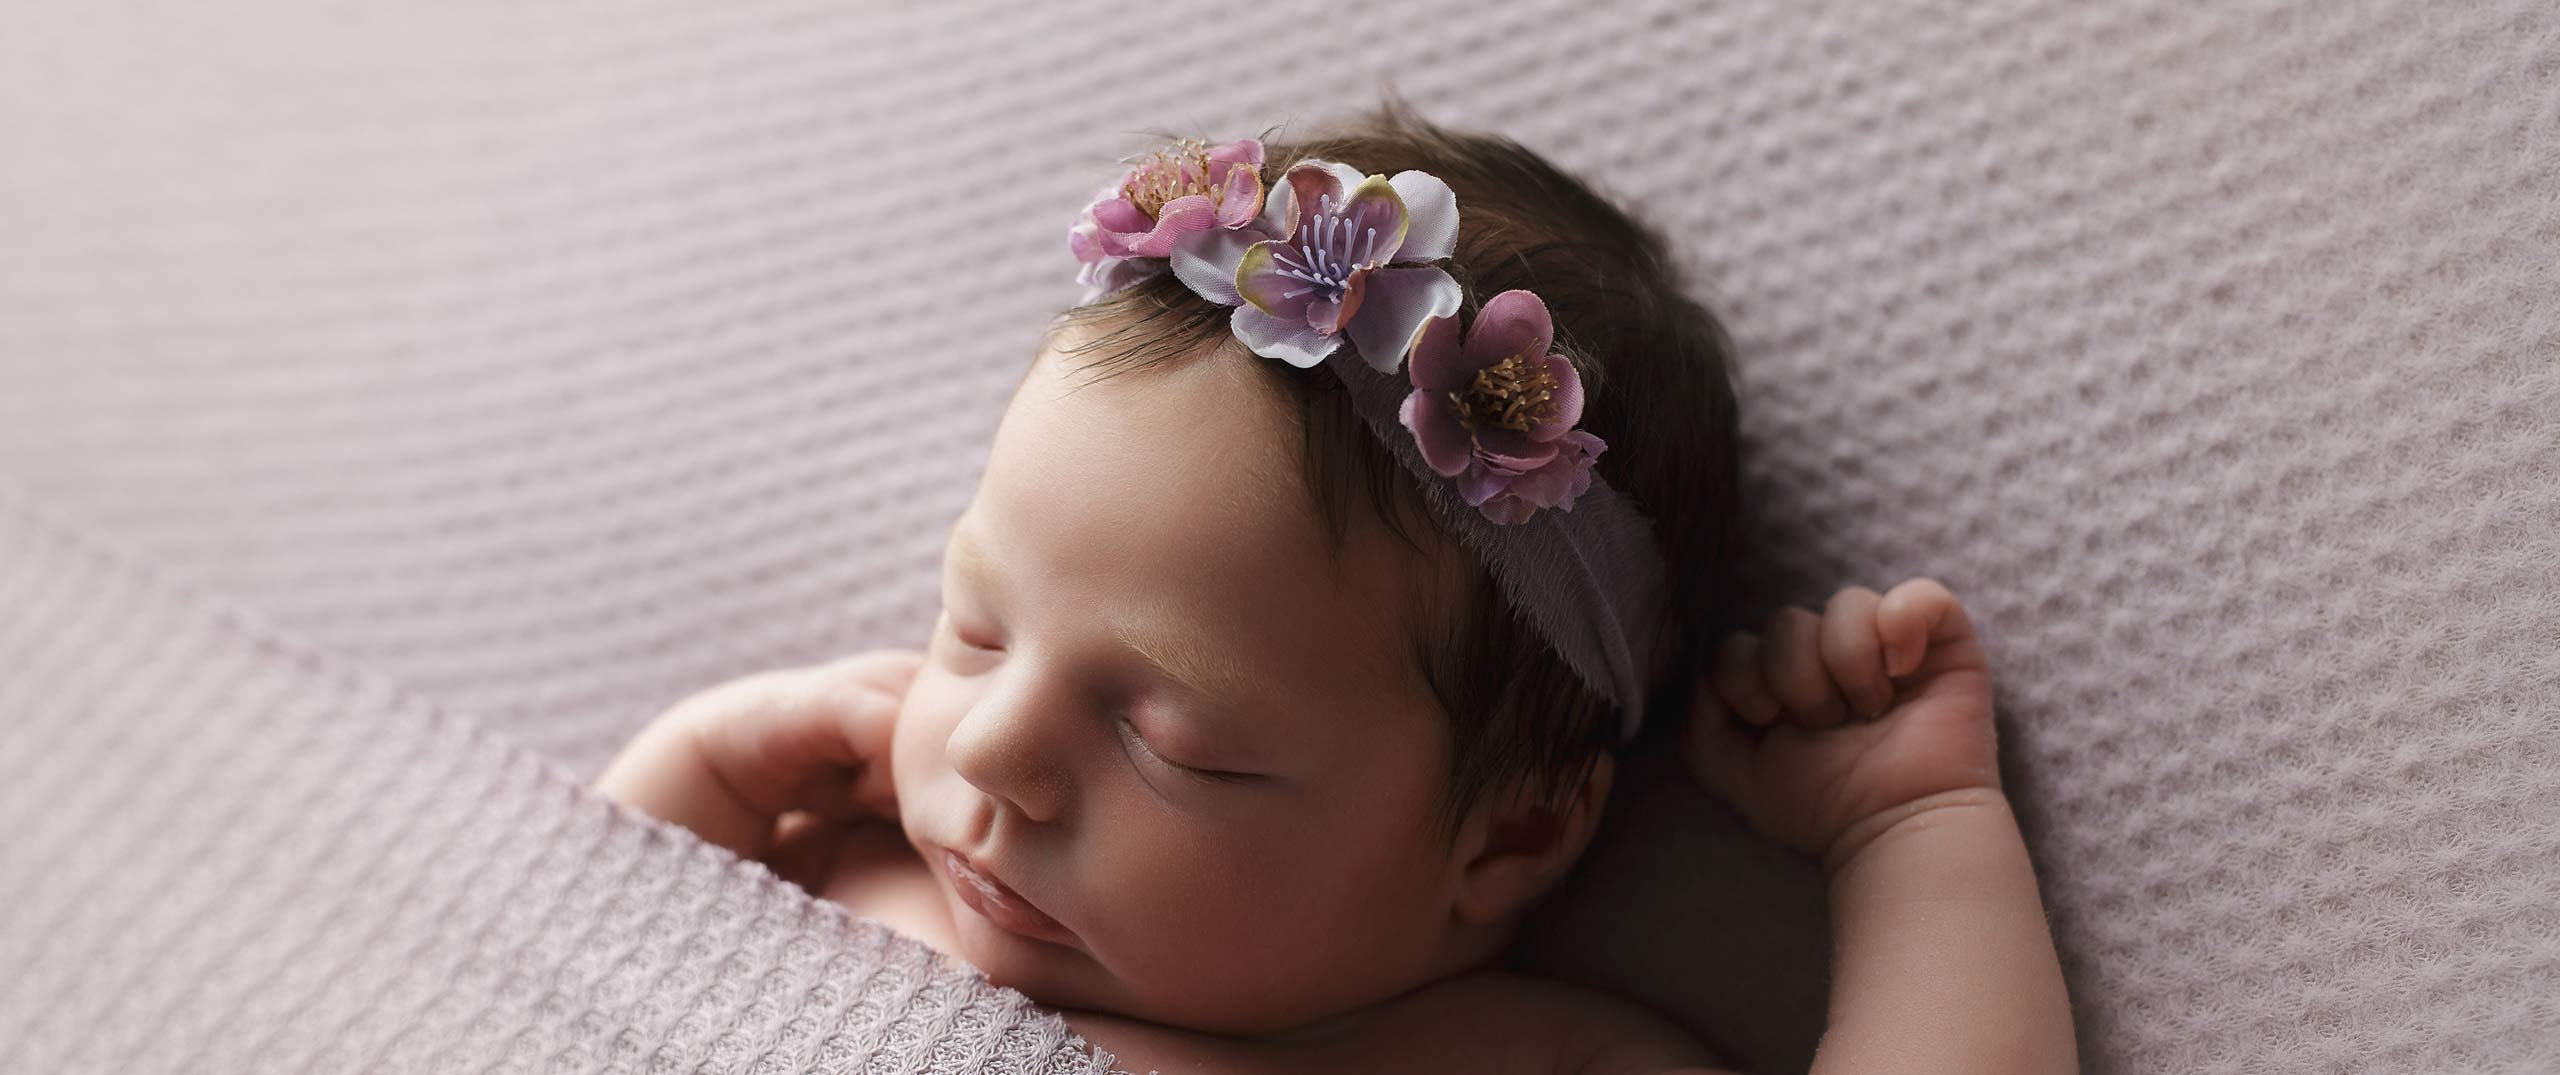 lincoln ne baby newborn photographer sleeping baby girl